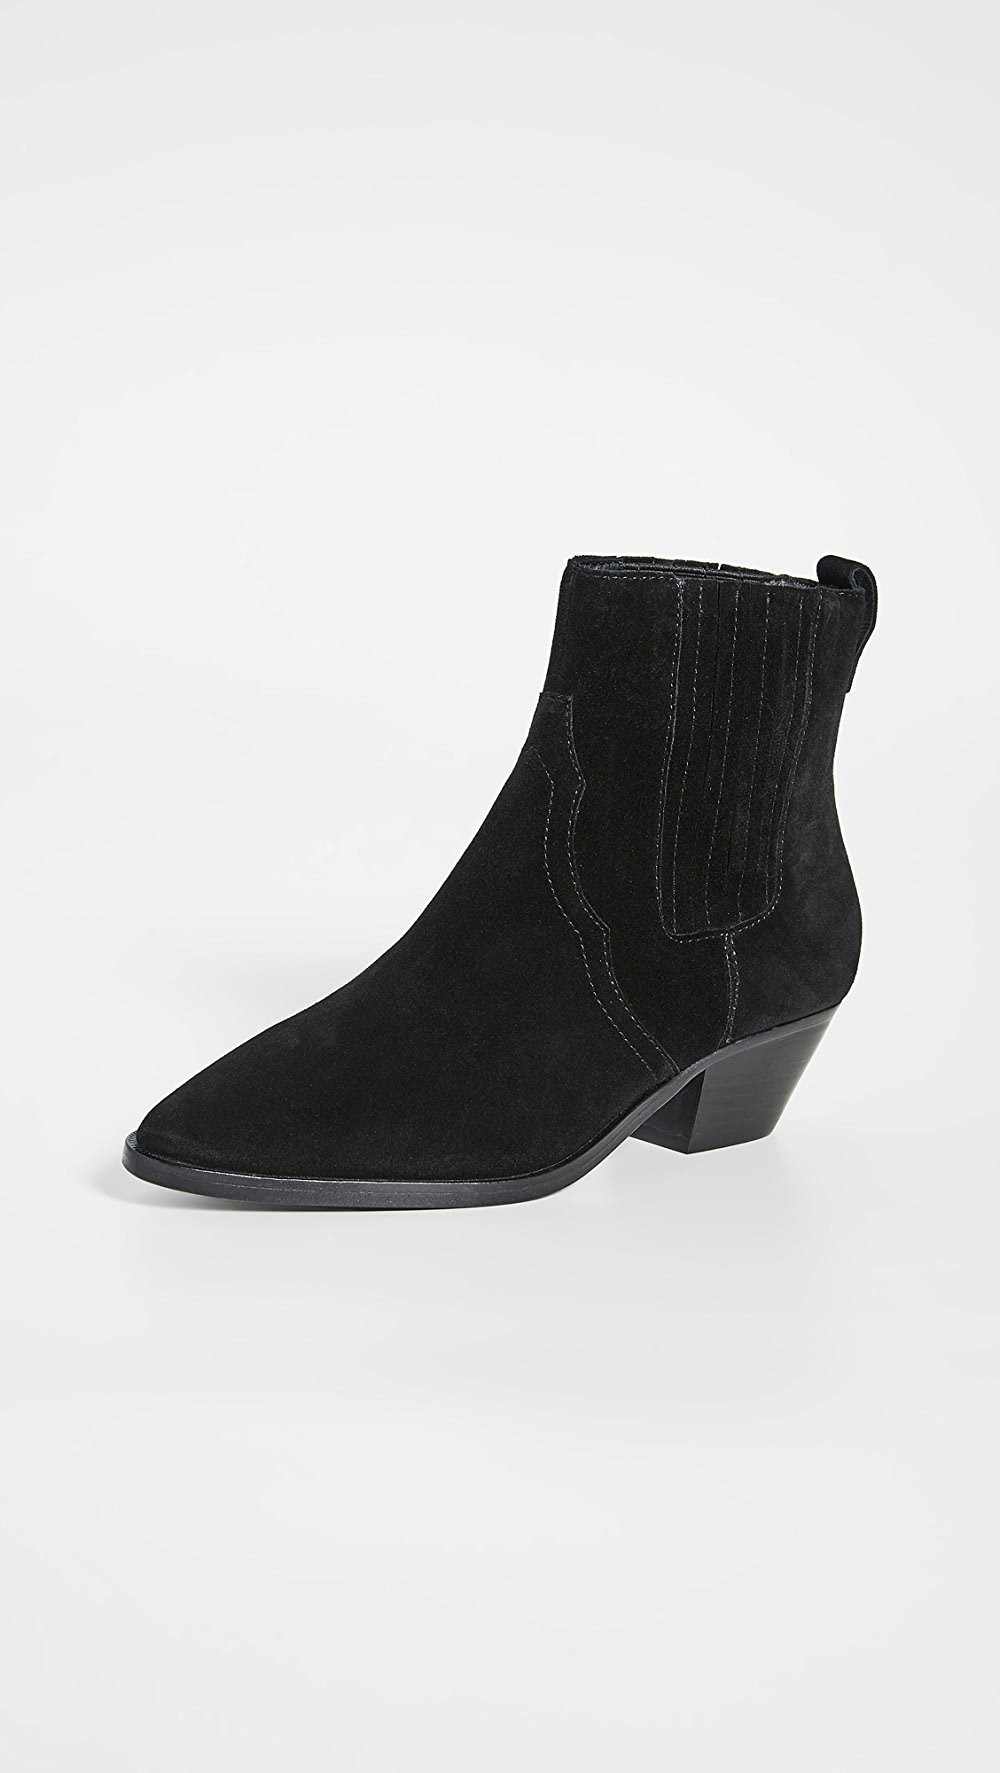 Amiable Ash - Future Booties 2019 Latest Style Online Sale 50%